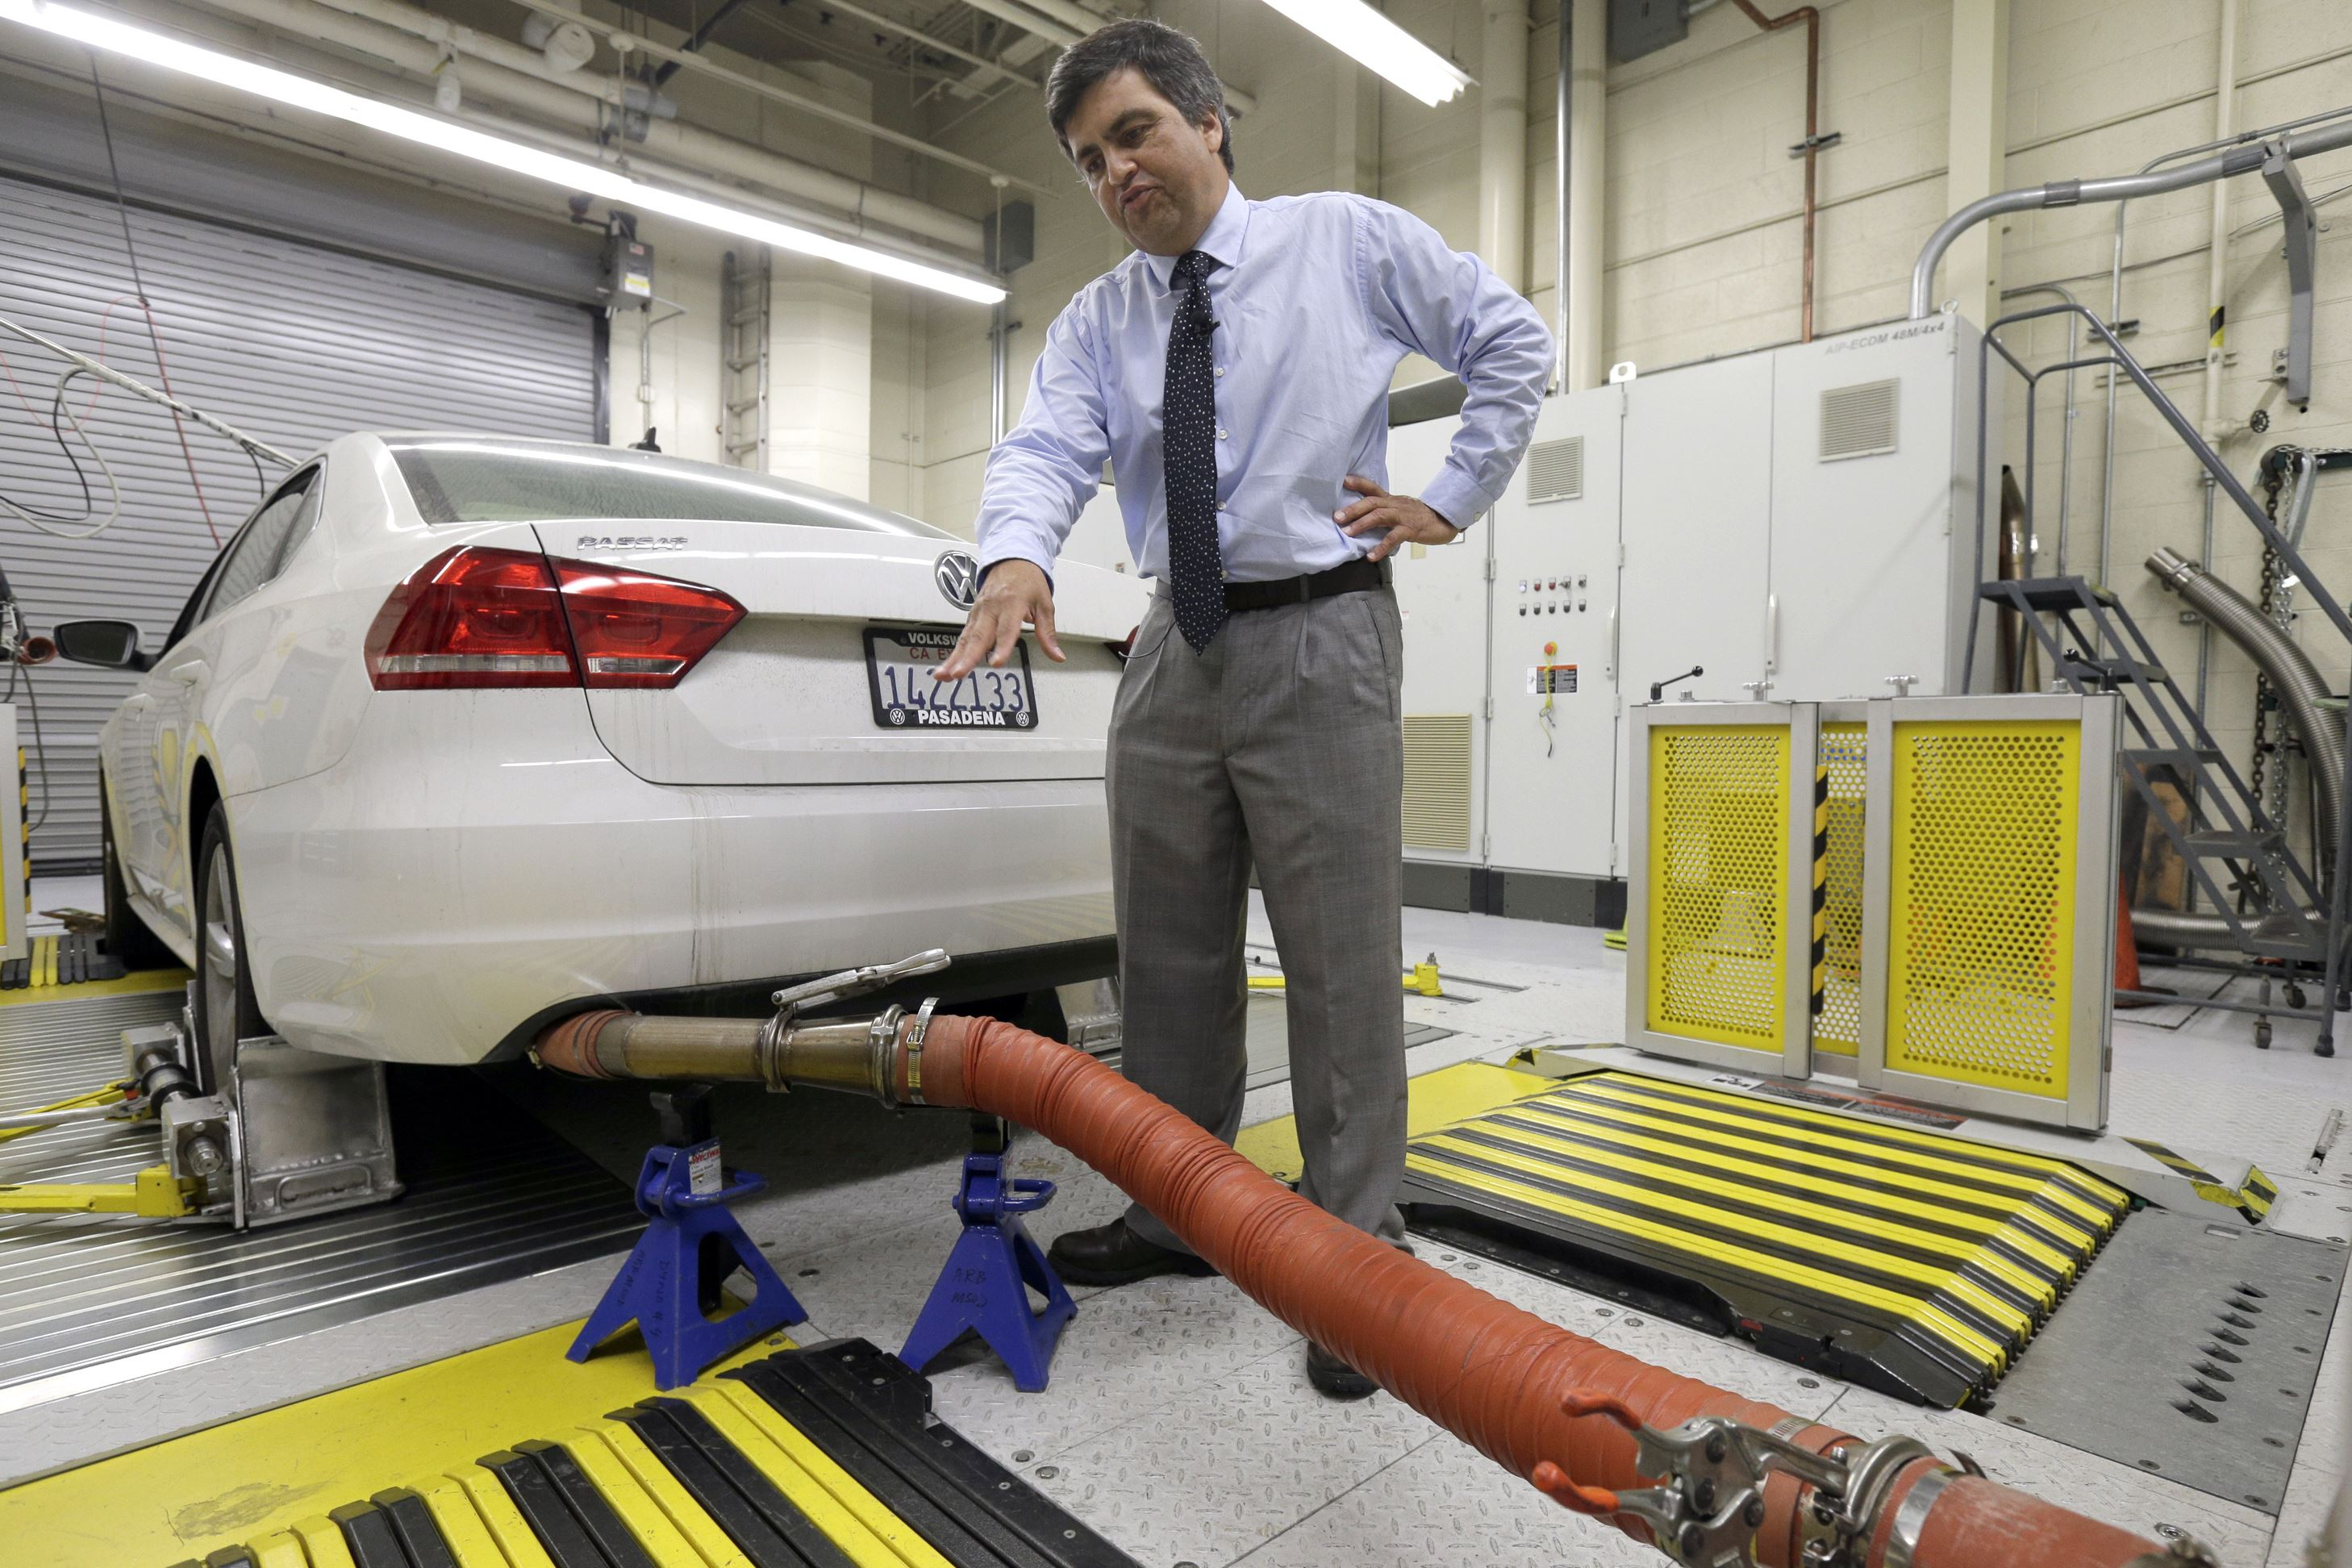 Diesel Deaths A 2013 Volkswagen Passat with a diesel engine is evaluated at the emissions test lab in El Monte, Calif in 2015. Real world pollution from diesel trucks, buses and cars globally is more than 50 percent higher than what government lab testing says it should be. And that translates to an extra 38,000 deaths worldwide from soot and smog, a new study say.